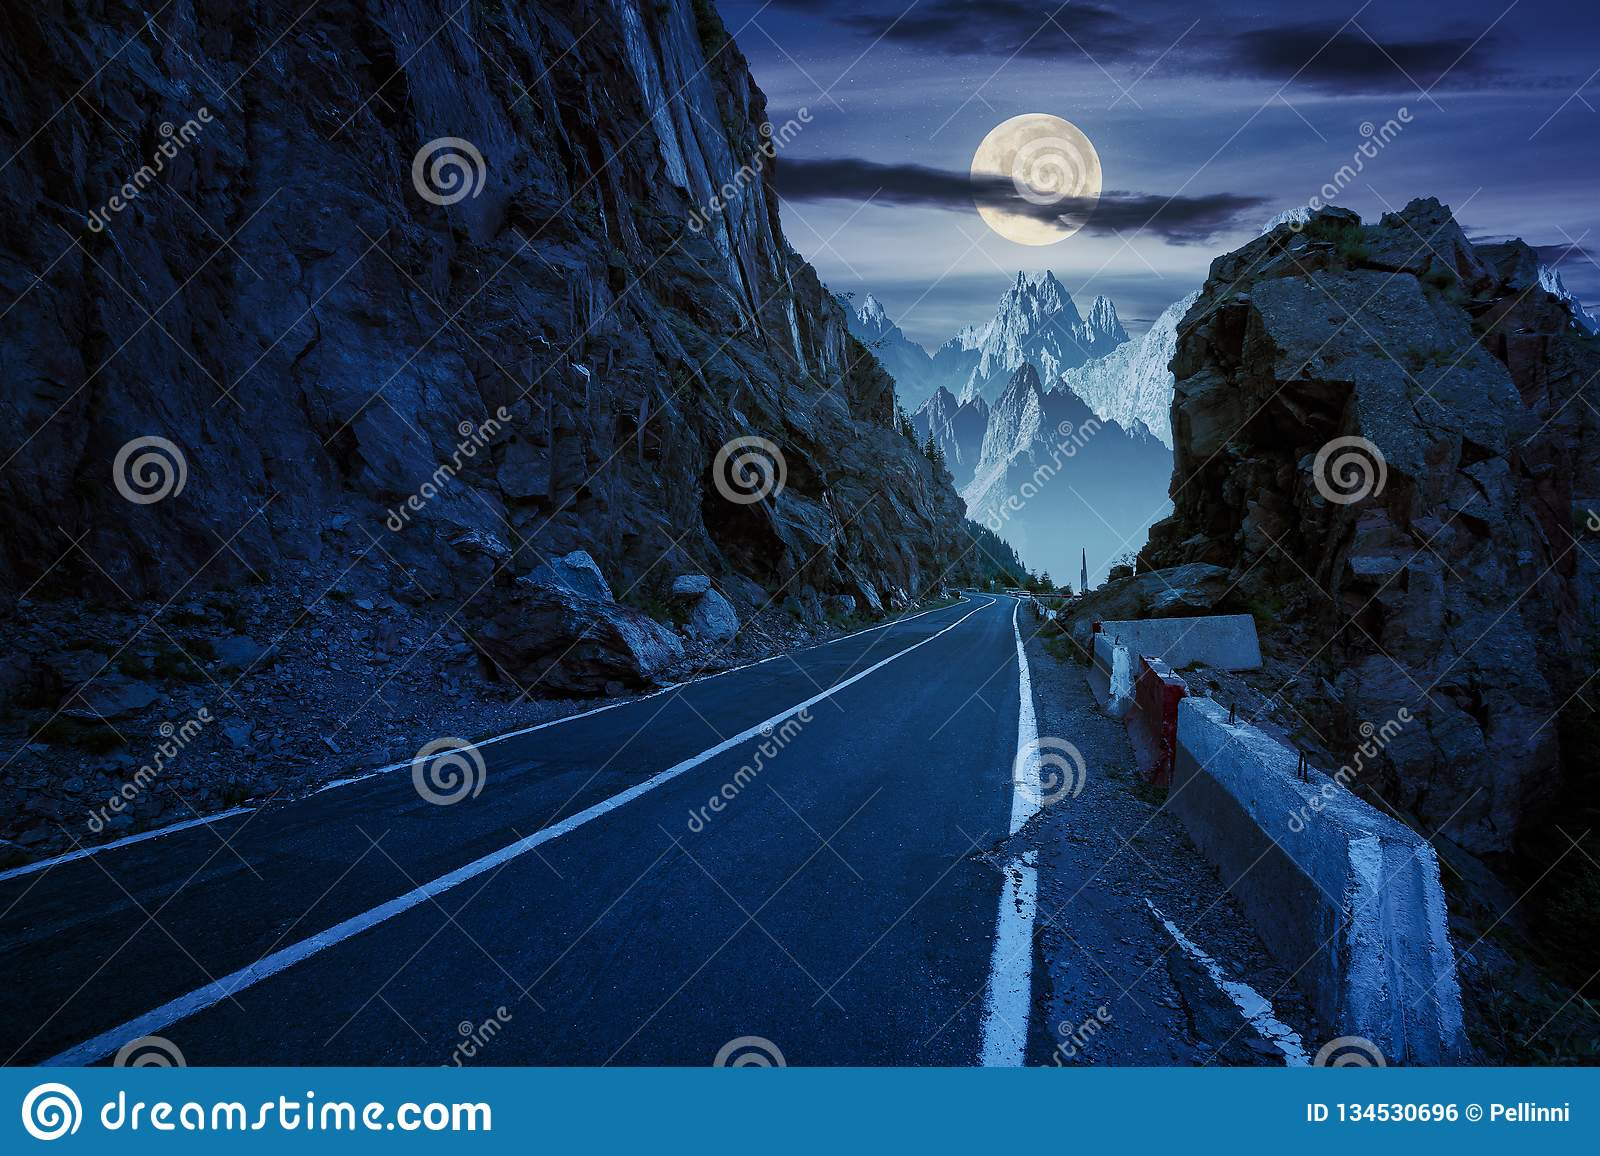 Road in to the high mountains at night